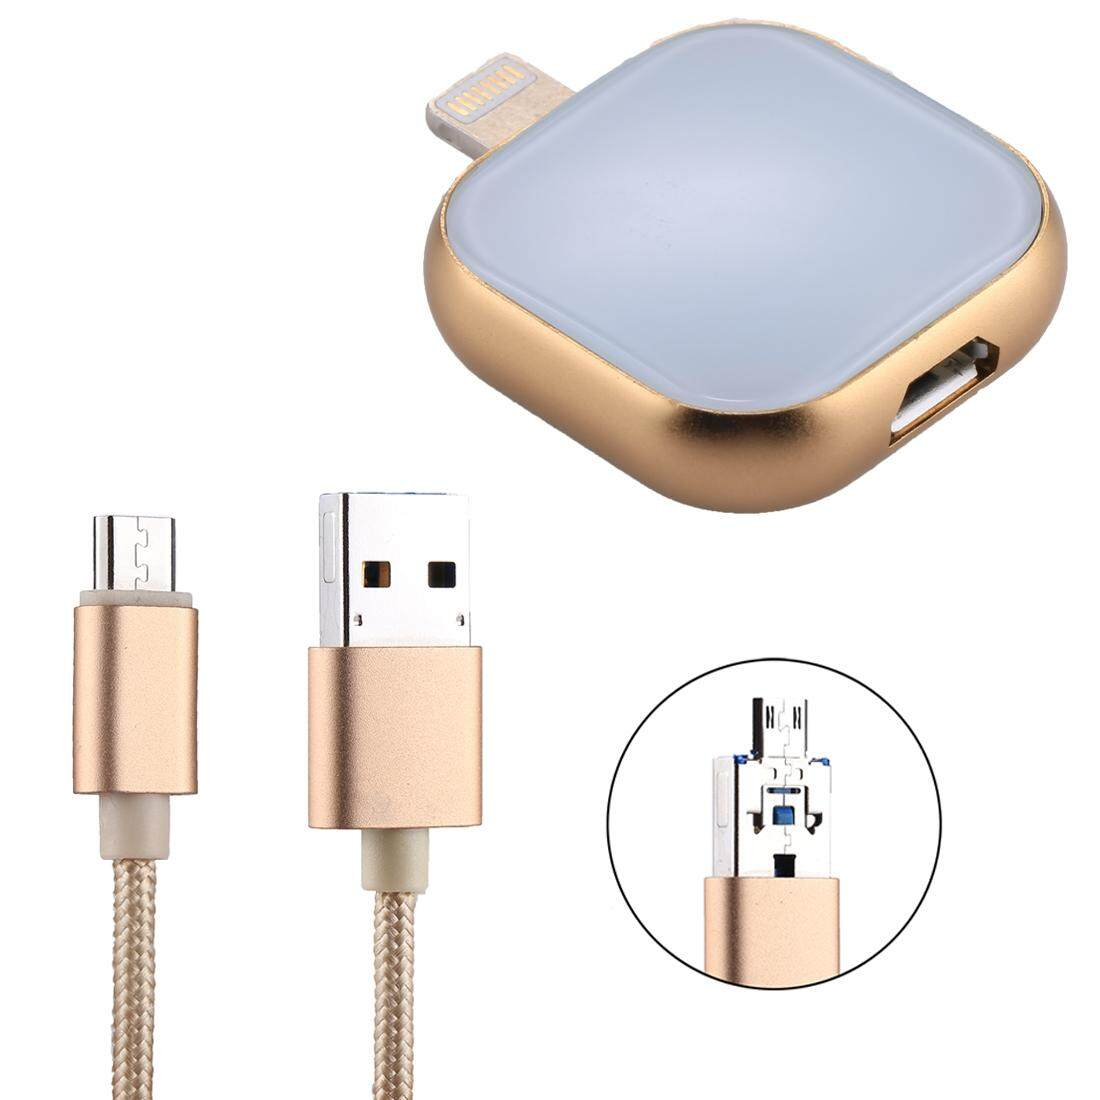 RQW-18S 8 Pin 16GB Multi-functional Flash Disk Drive with USB / Micro USB to Micro USB Cable, For iPhone X / iPhone 8 and 8 Plus / iPhone 7 and 7 Plus / iPhone 6 and 6s and 6 Plus and 6s Plus / iPad(Gold)